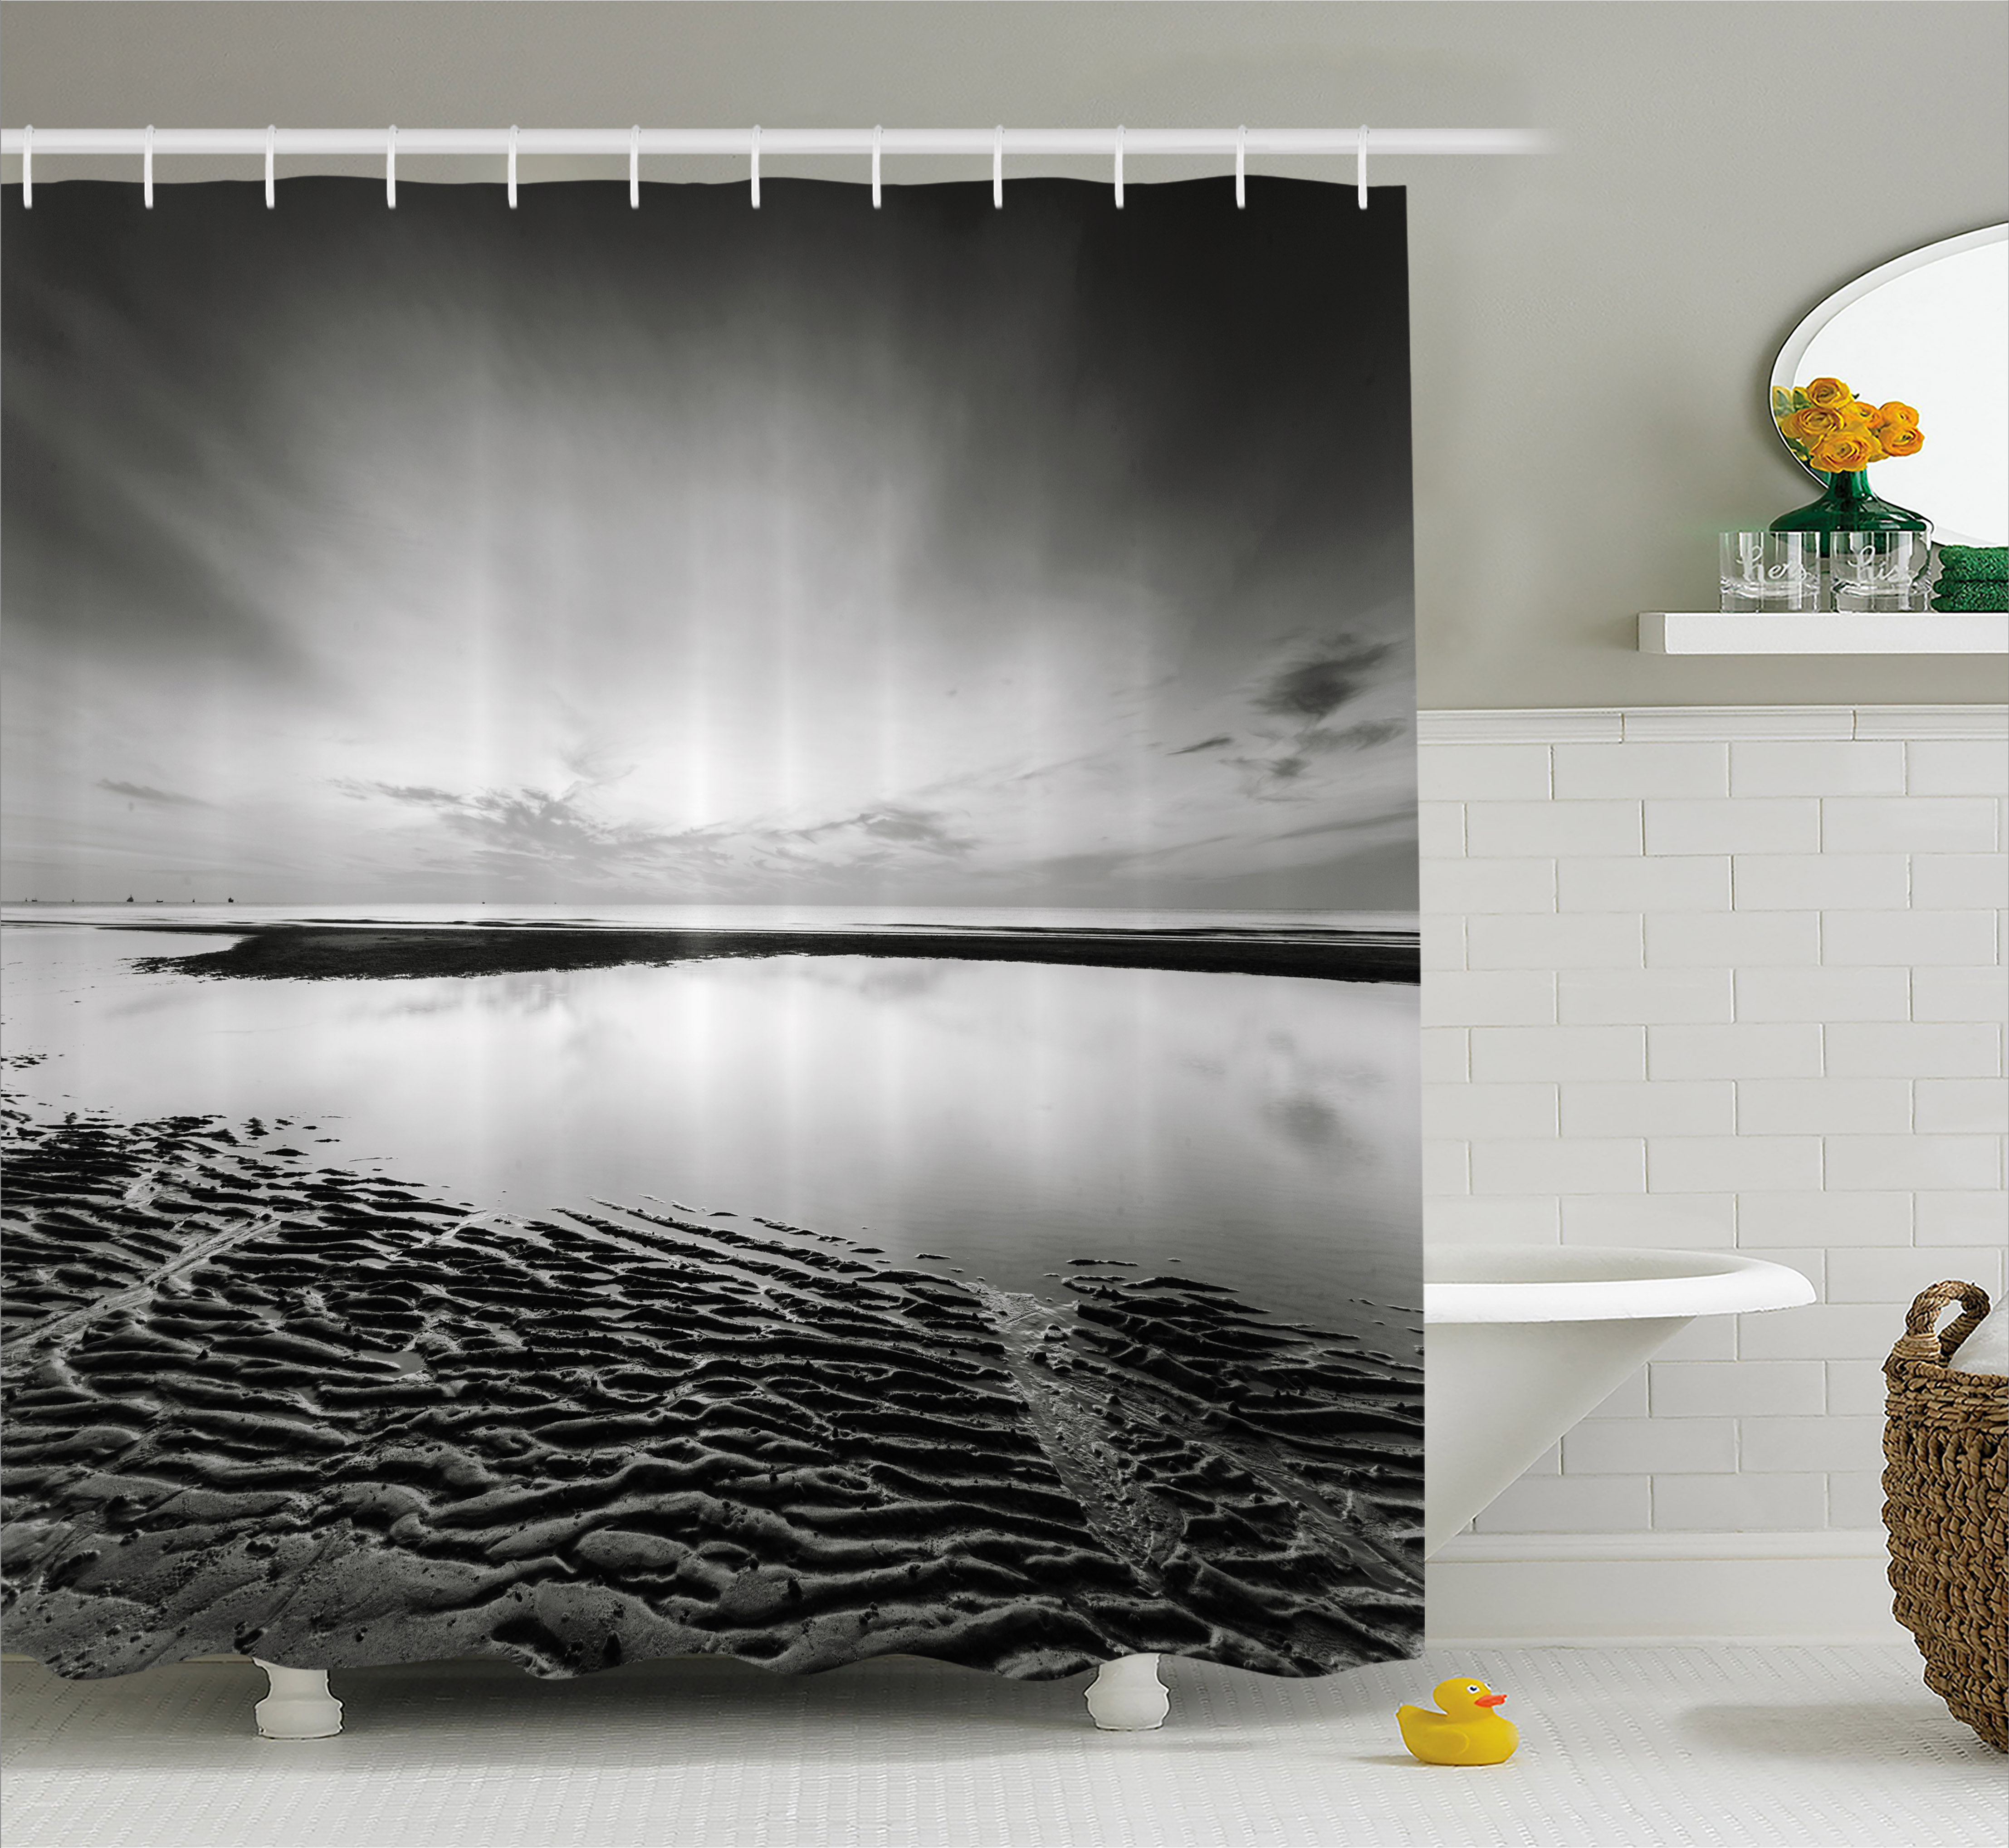 Black And White Shower Curtain Idyllic Sunrise At The Beach Rippled Seashore Dramatic View Image Fabric Bathroom Set With Hooks Grey